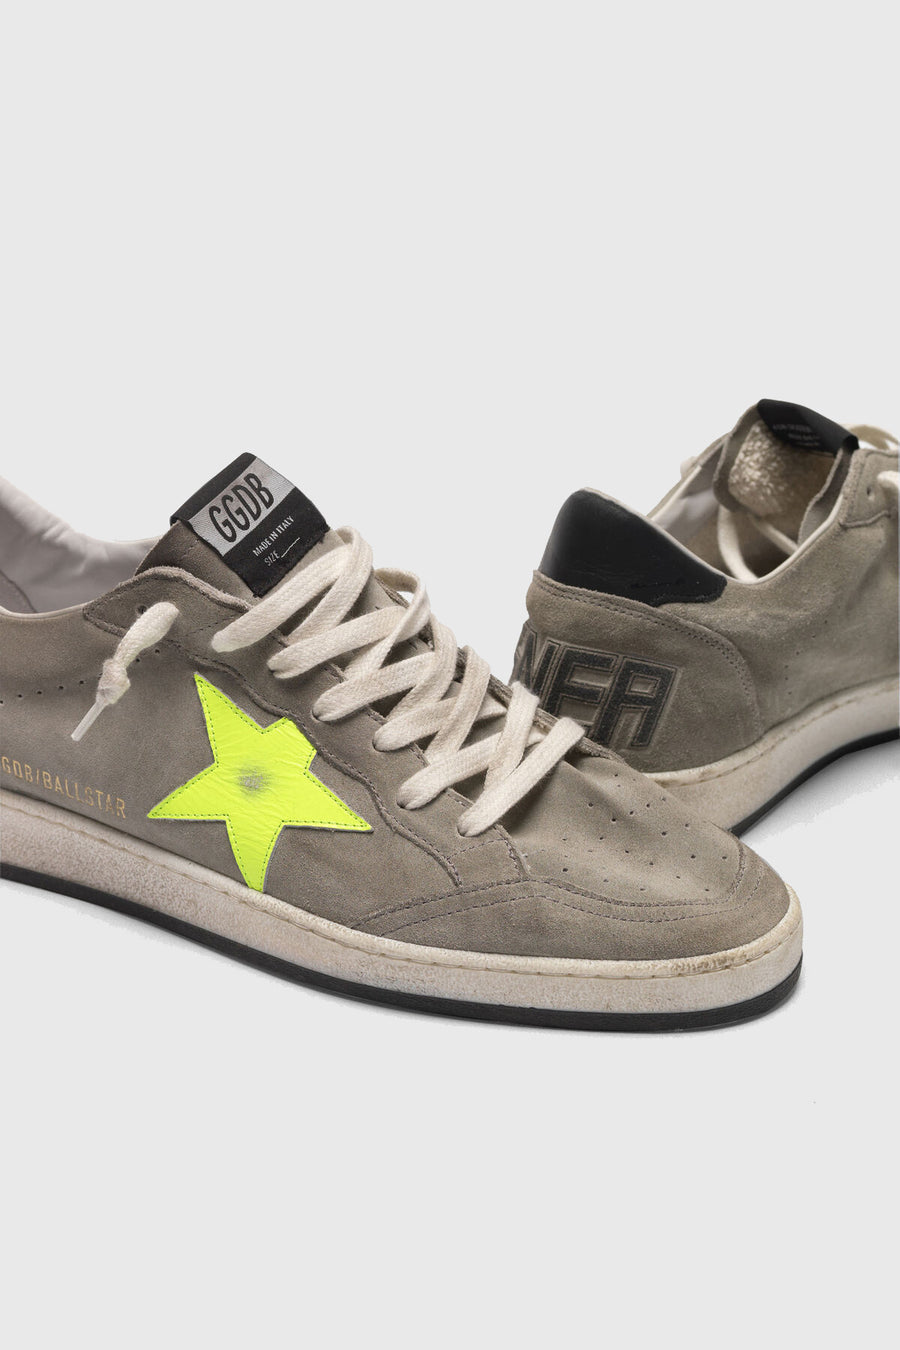 Ball Star - Waxed Ice Suede Yellow Star